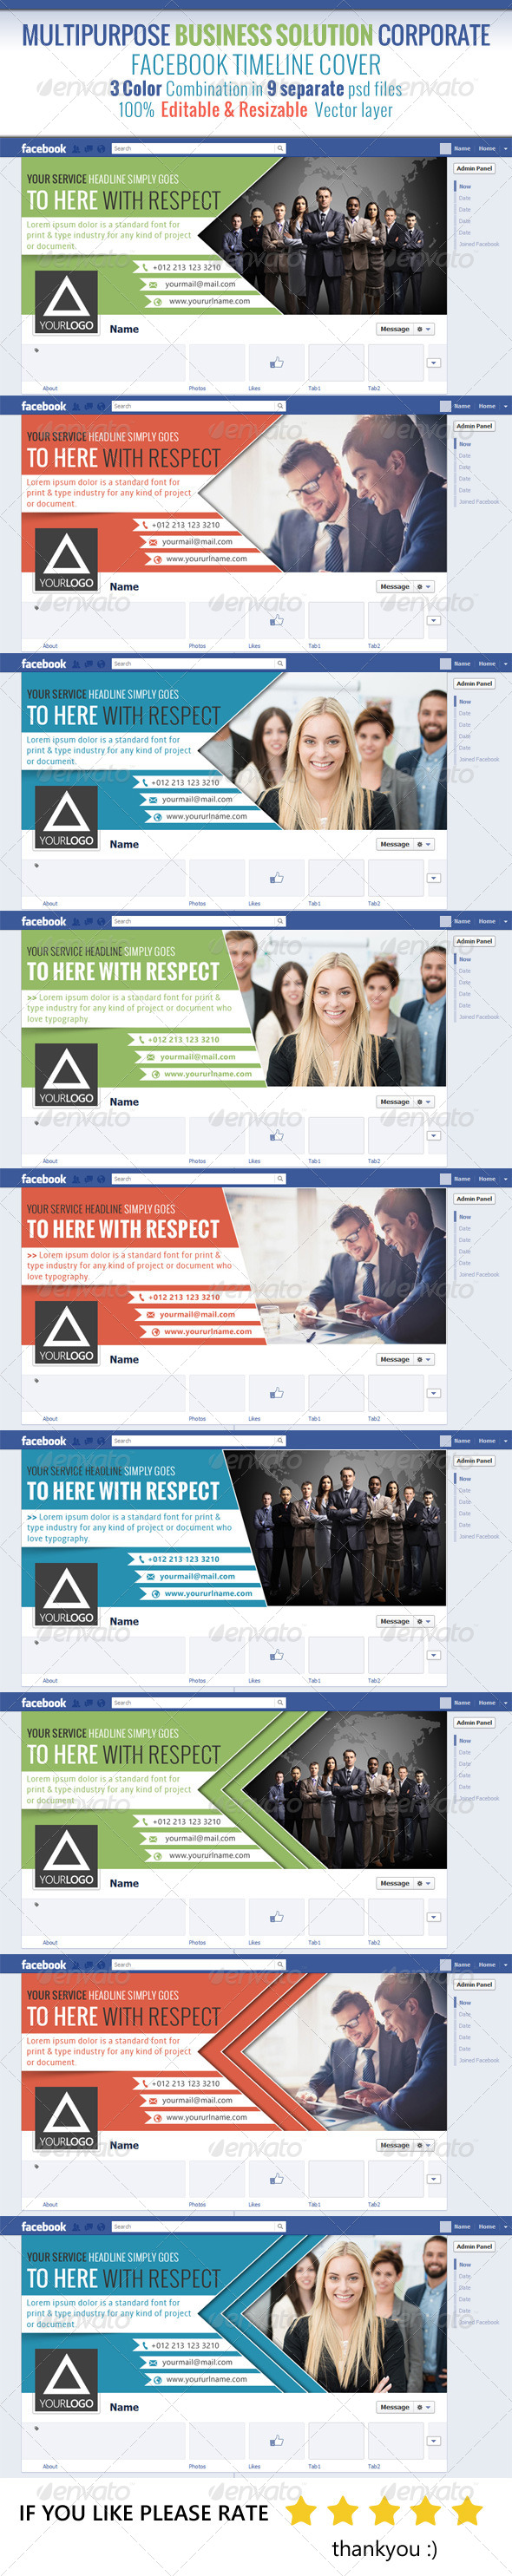 Multipurpose Business Solution Facebook Timeline - Facebook Timeline Covers Social Media